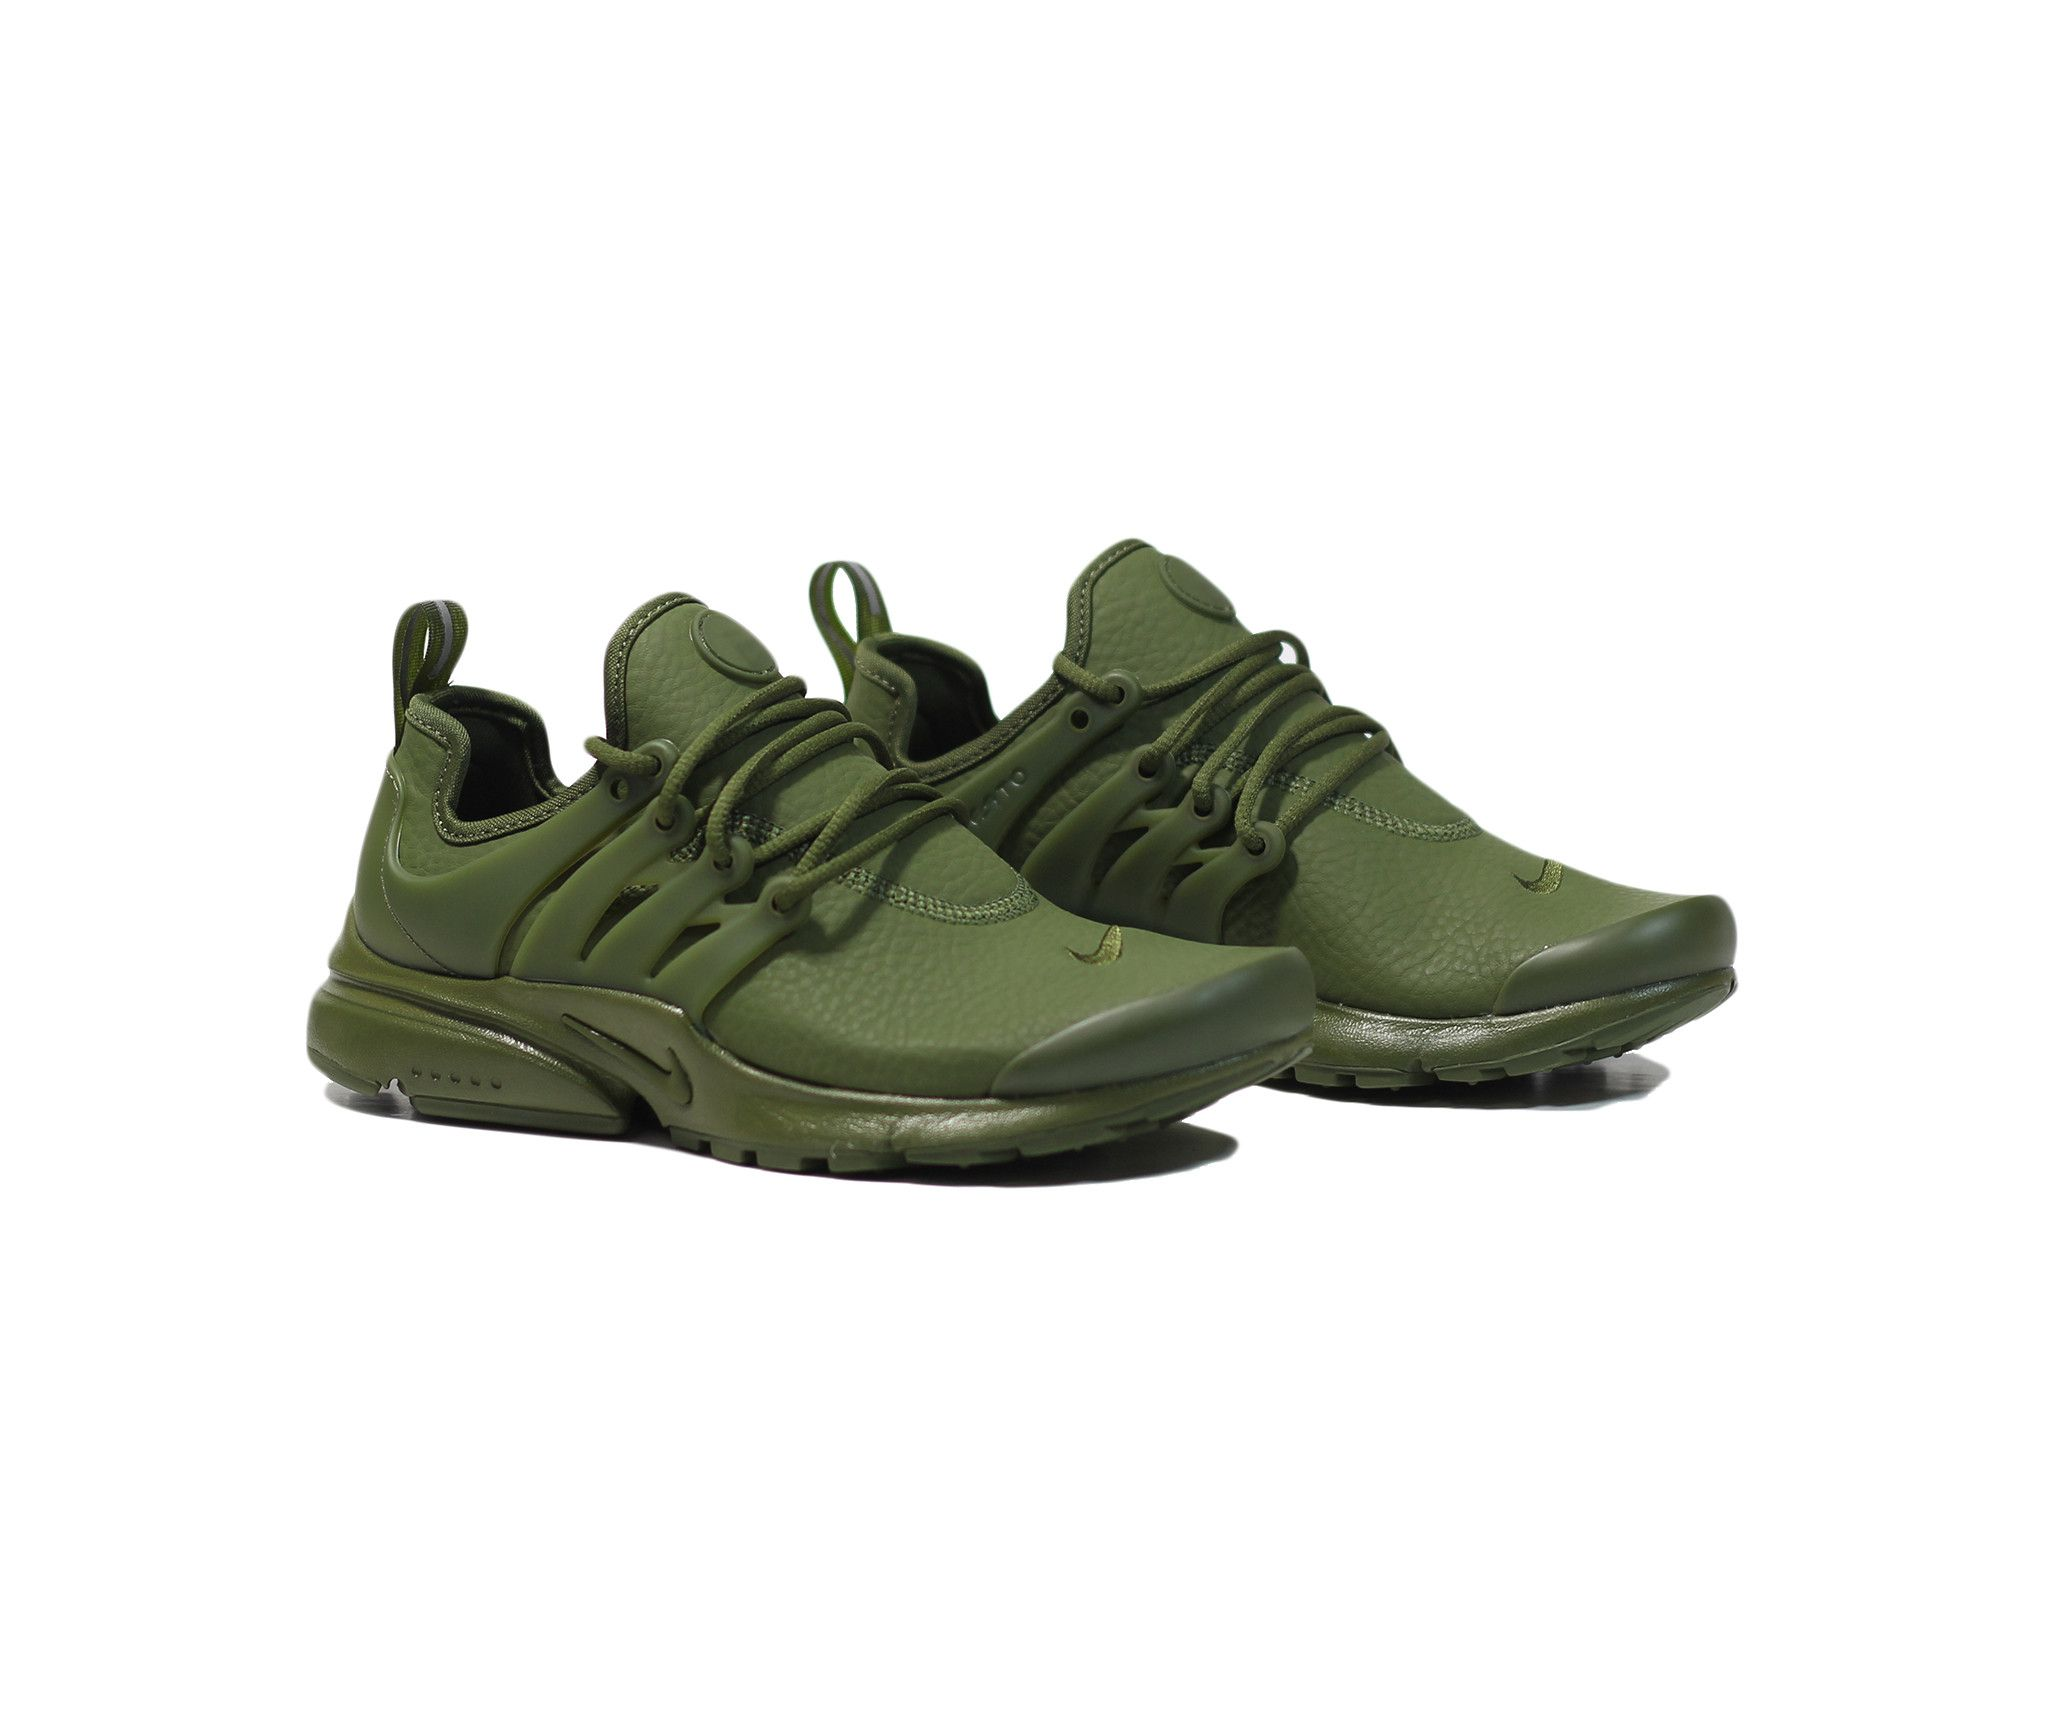 quality design 2ce7b 3ba3a ... Nike Womens Air Presto PRM - Legion GreenBlack ...